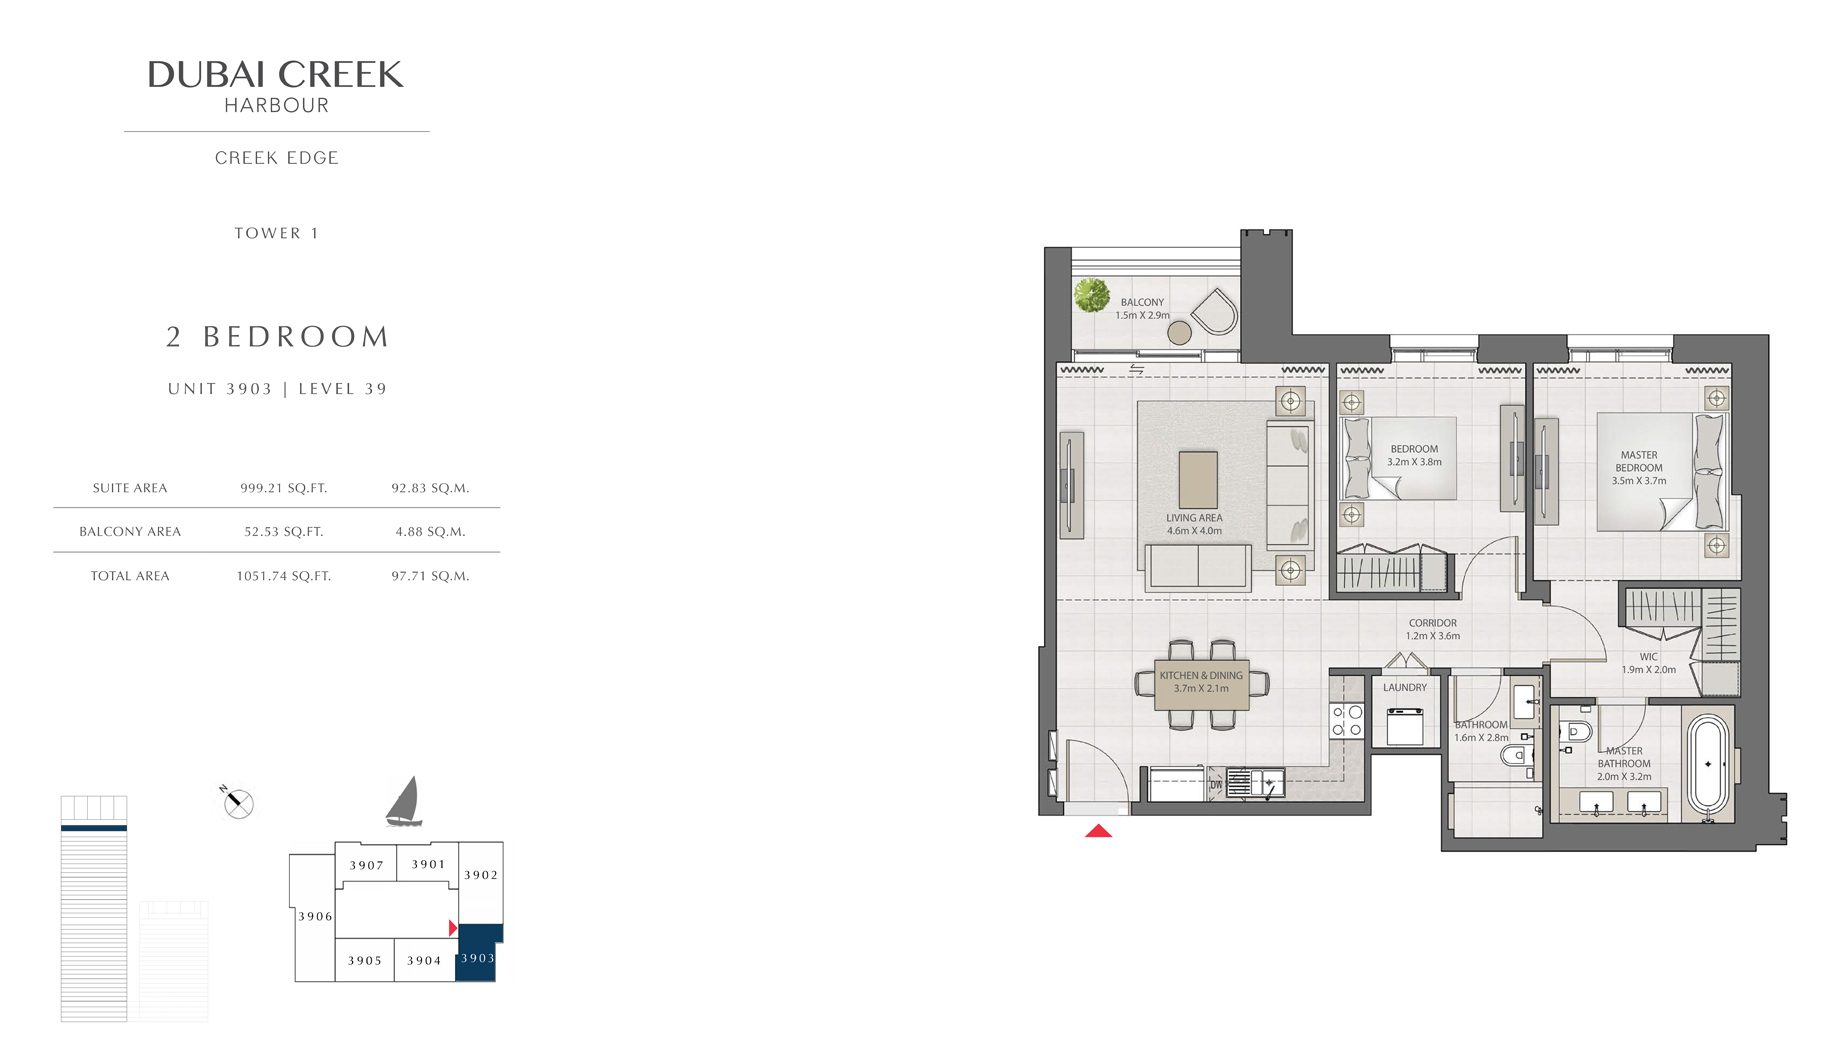 2 Bedroom Tower 1 Unit 3903 Level 39 Size 1051 sq.ft